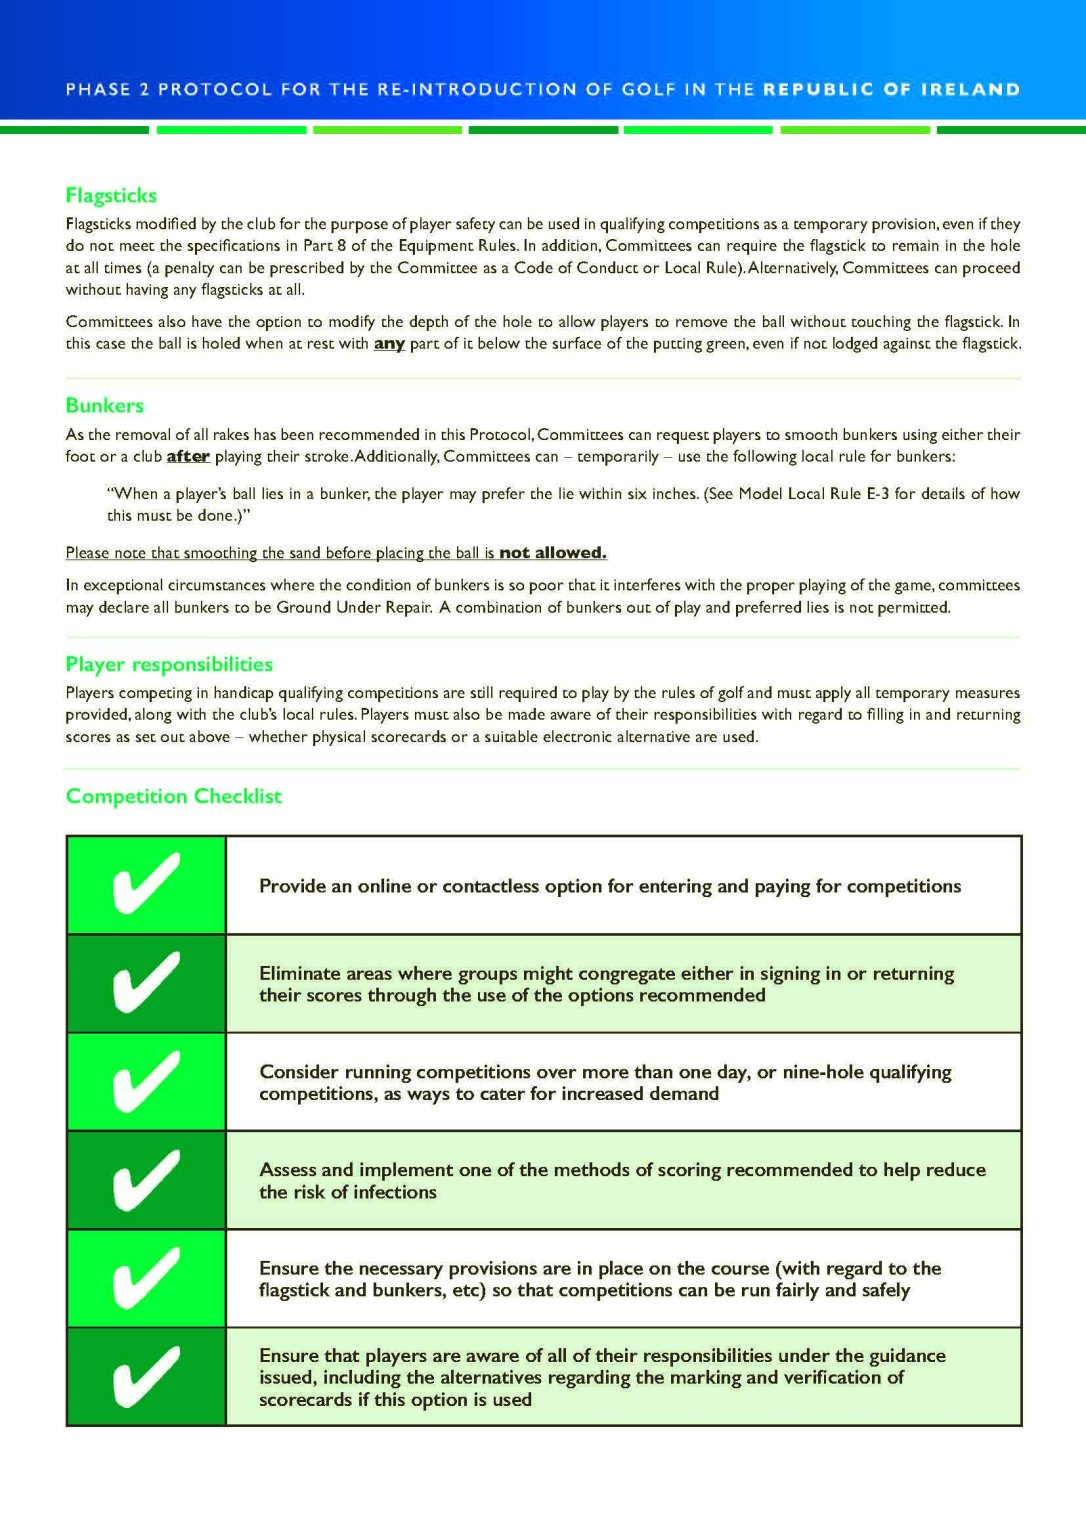 Protocol_Phase2(8)_Page_6